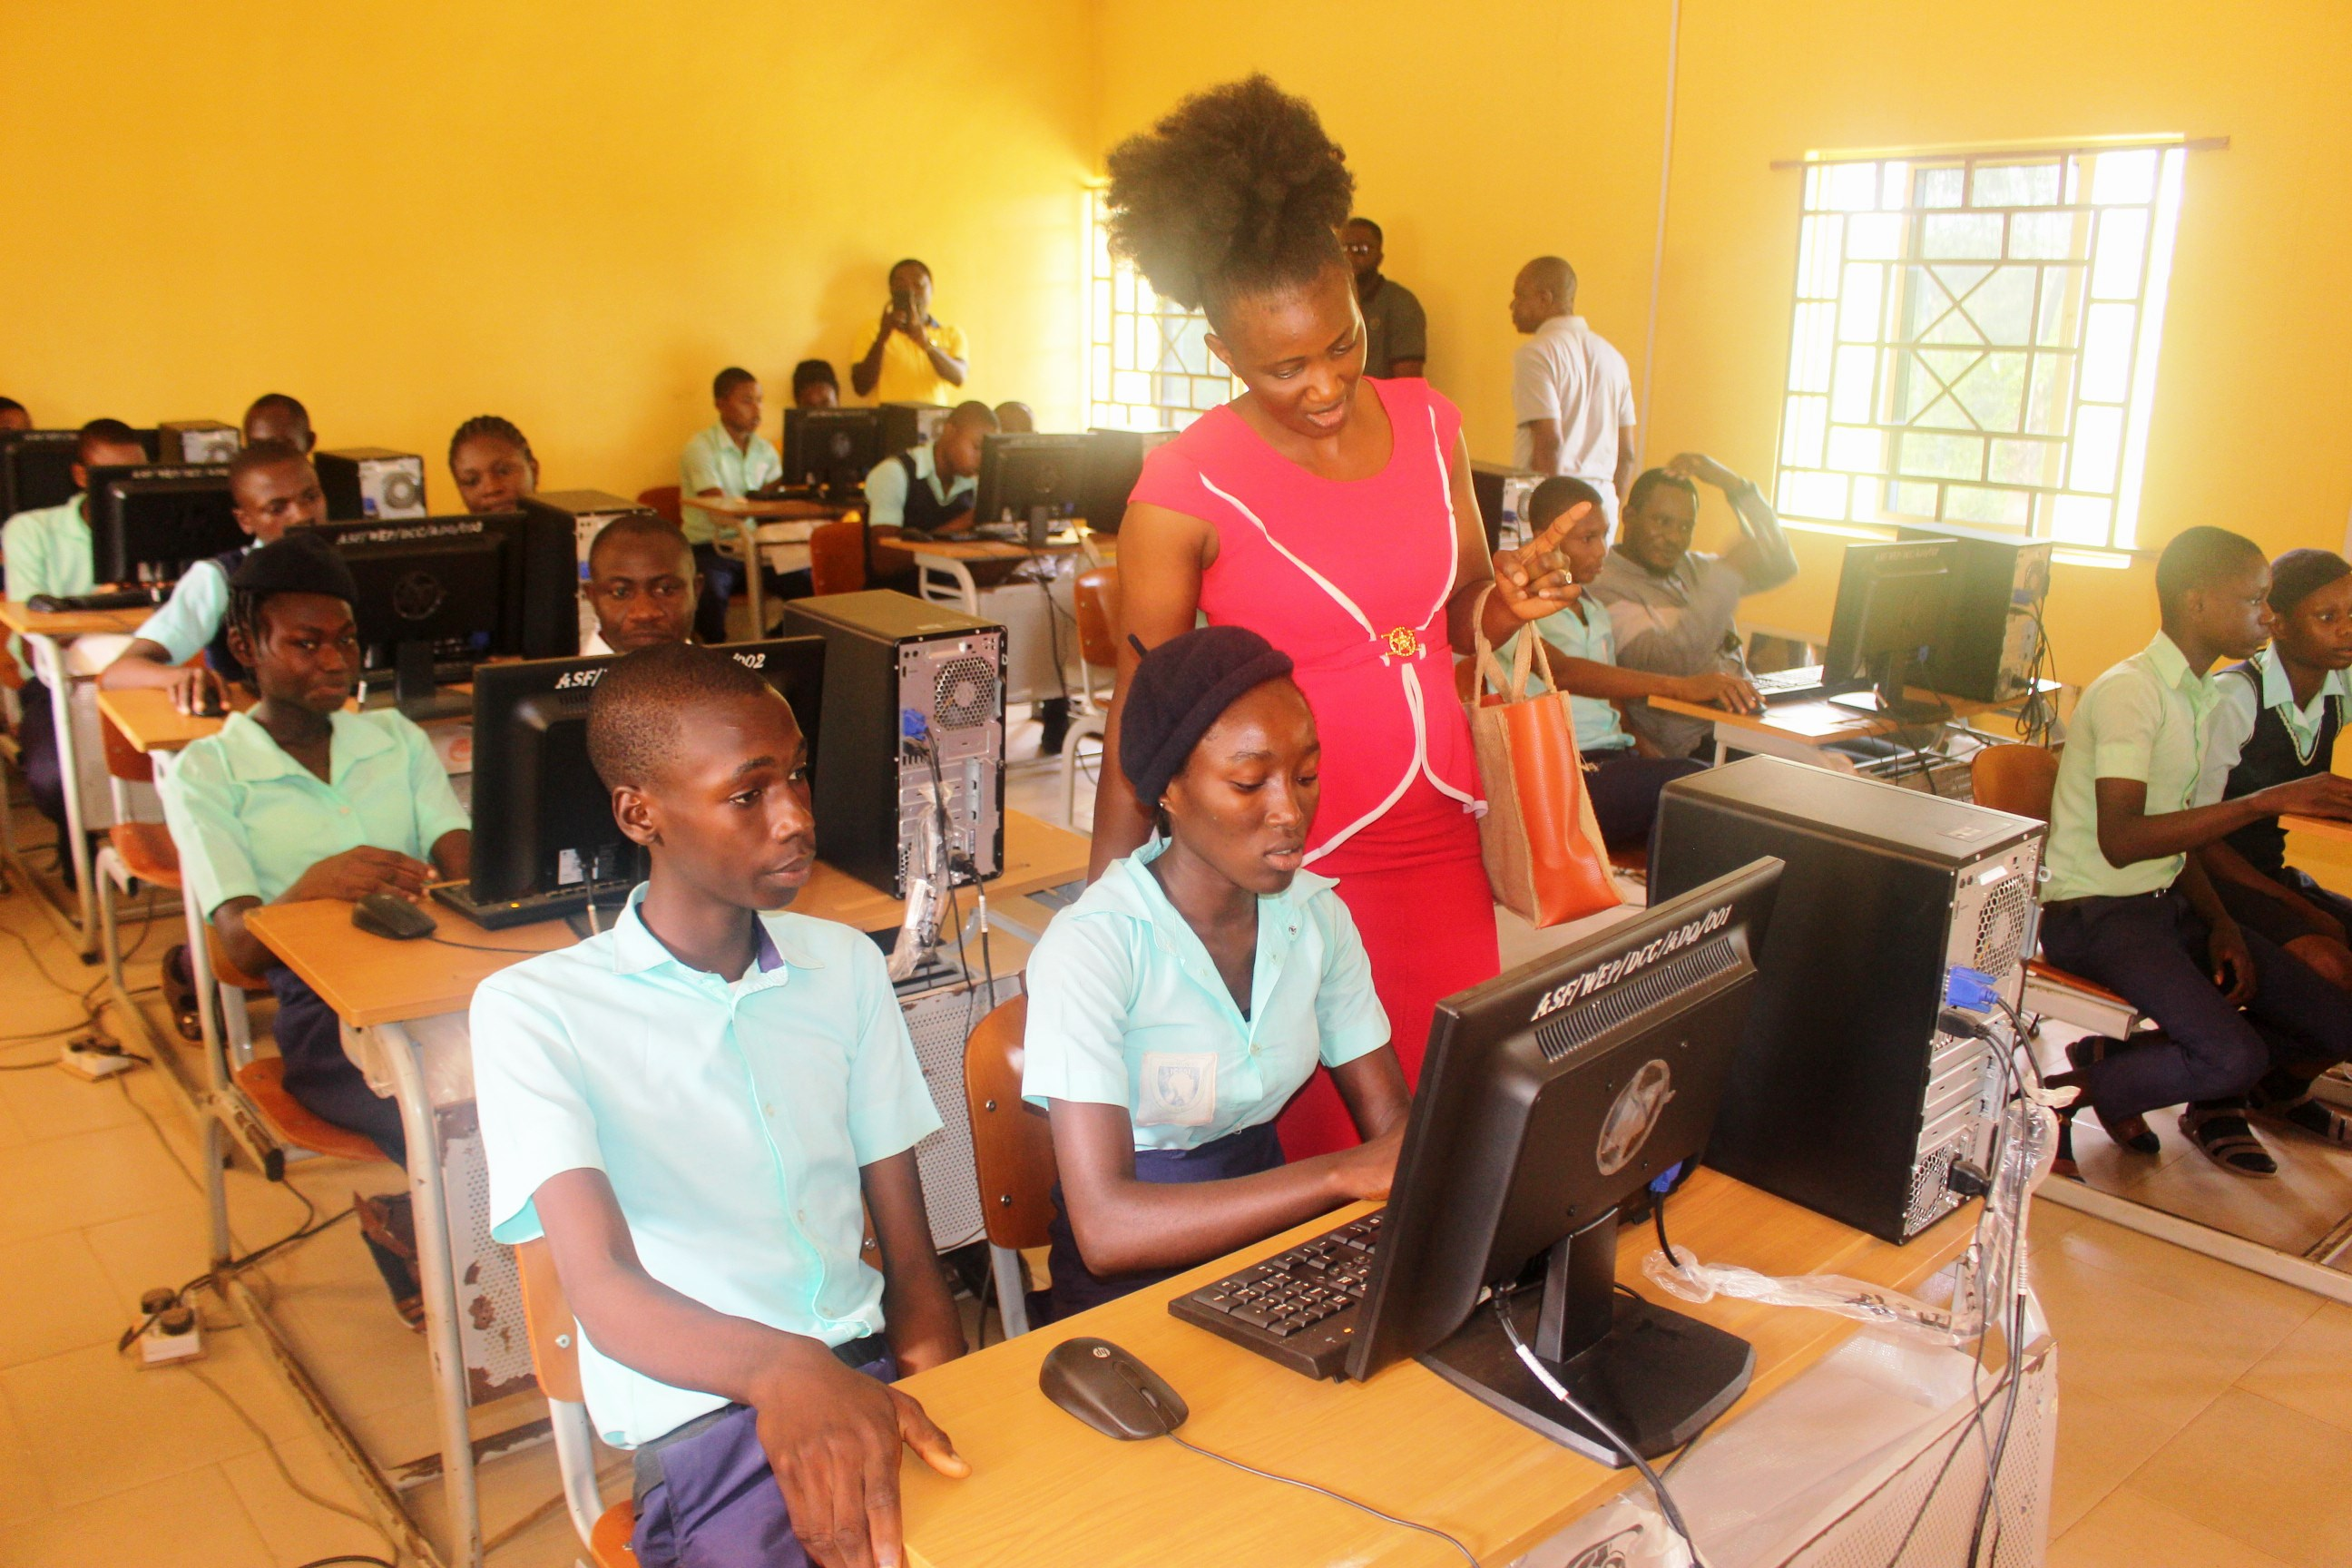 DIGITAL/CREATIVE COMPUTER LABORATORIES DONATED TO COMMUNITY SCHOOLS